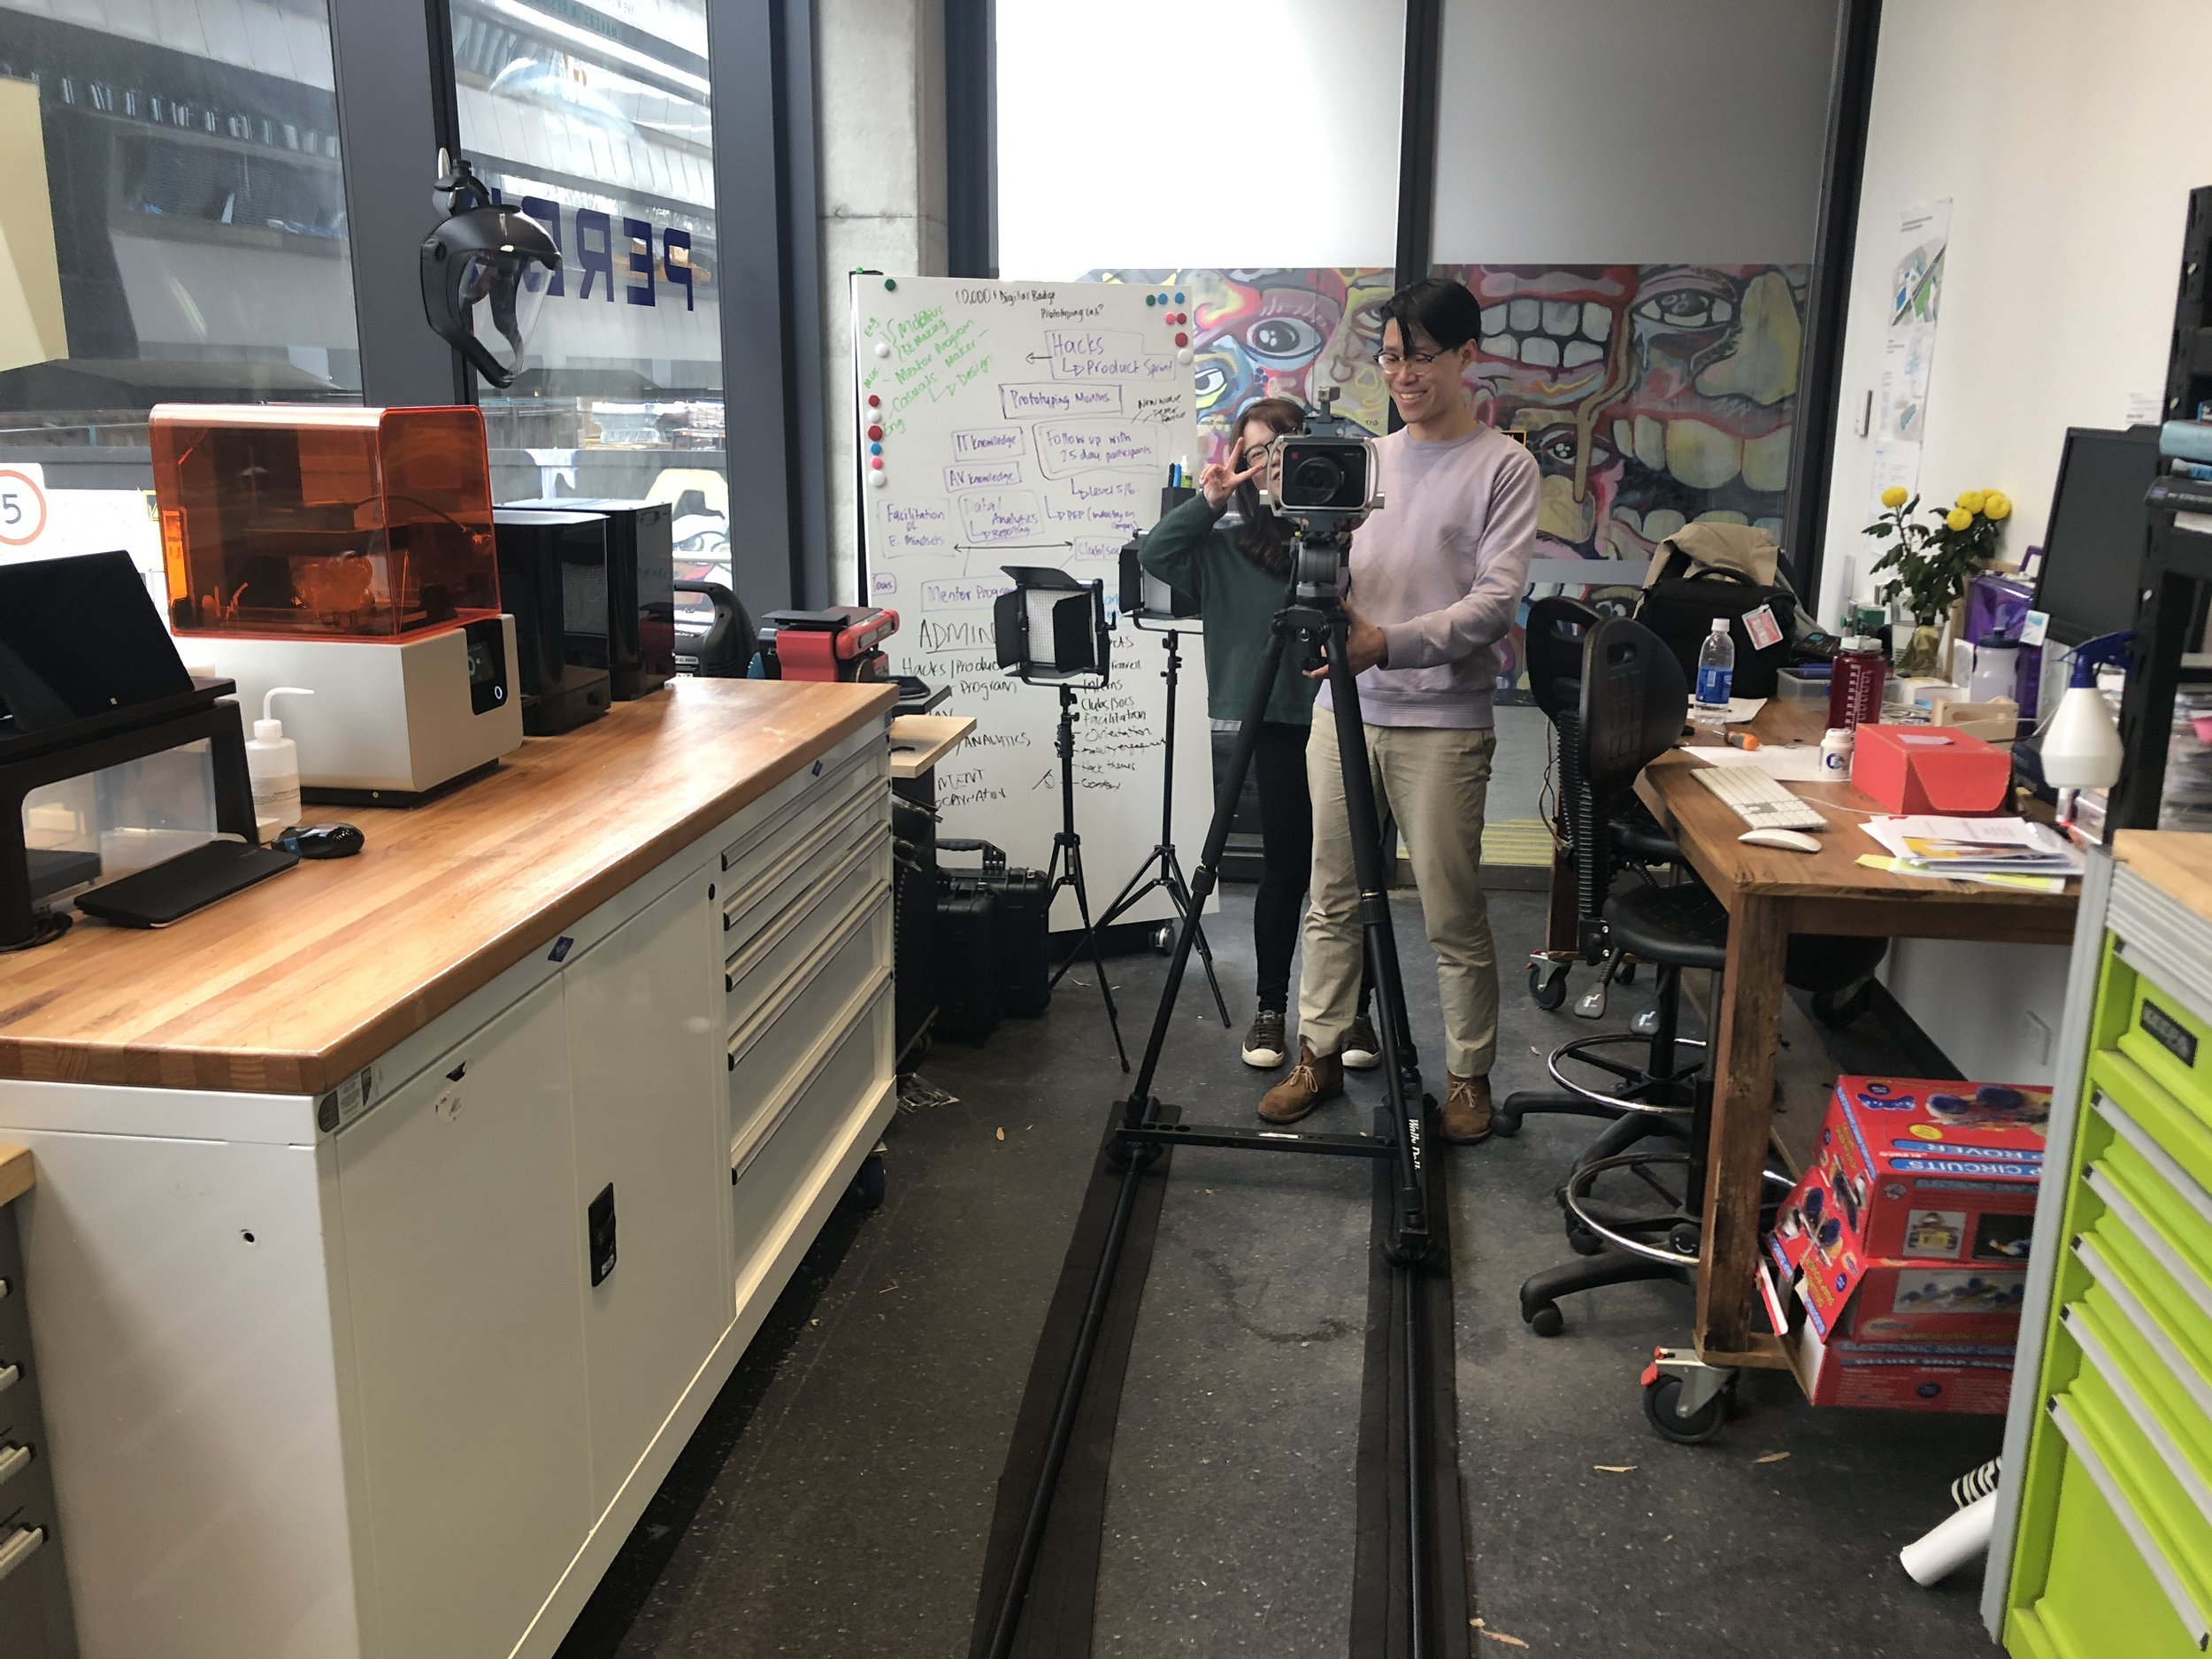 Camera dolley getting some nice shots of our manufacturing set up.